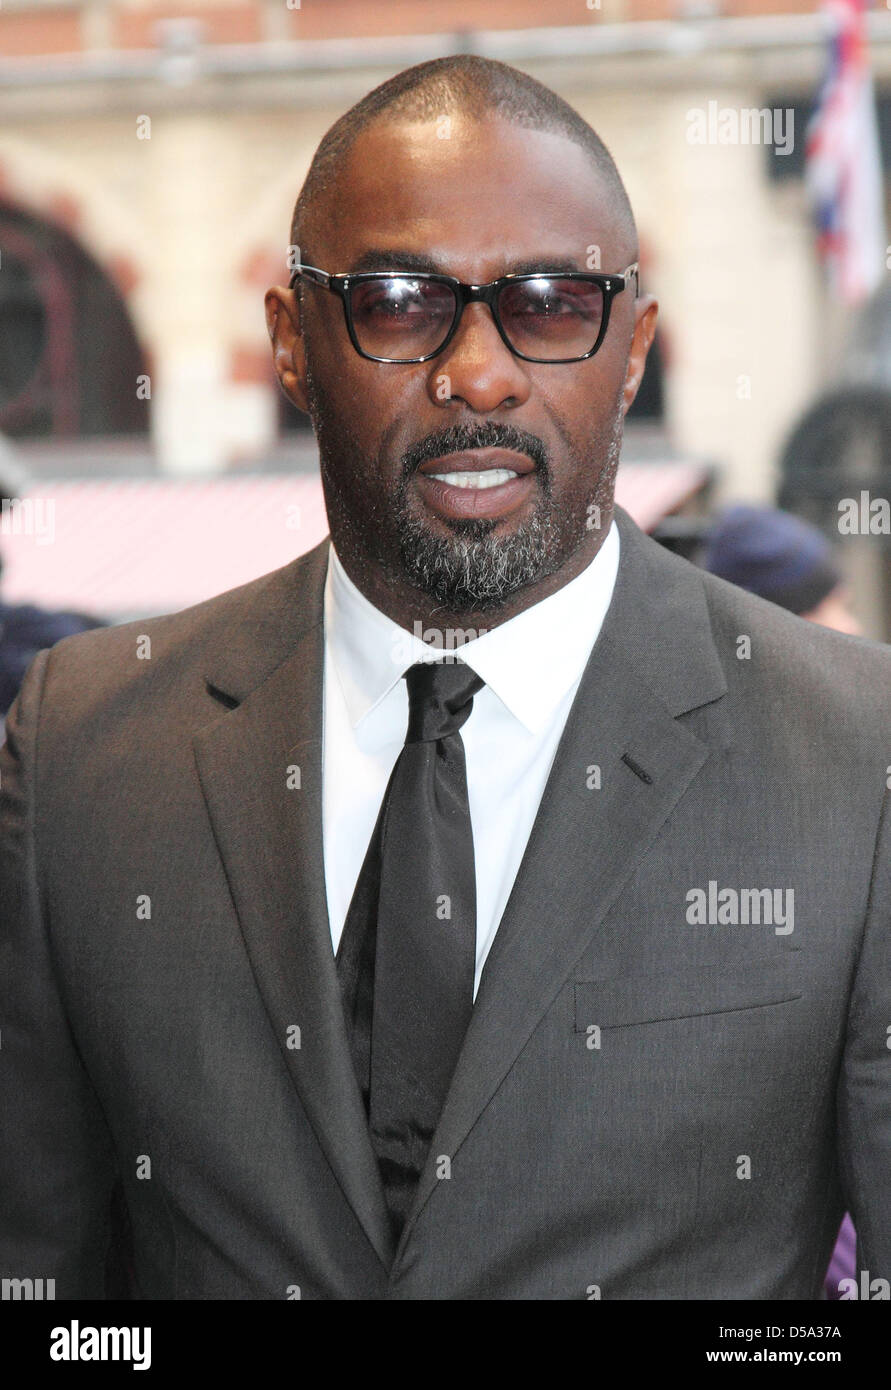 London, UK. 26th March 2013. Actor and star of \'The Wire\' US TV ...